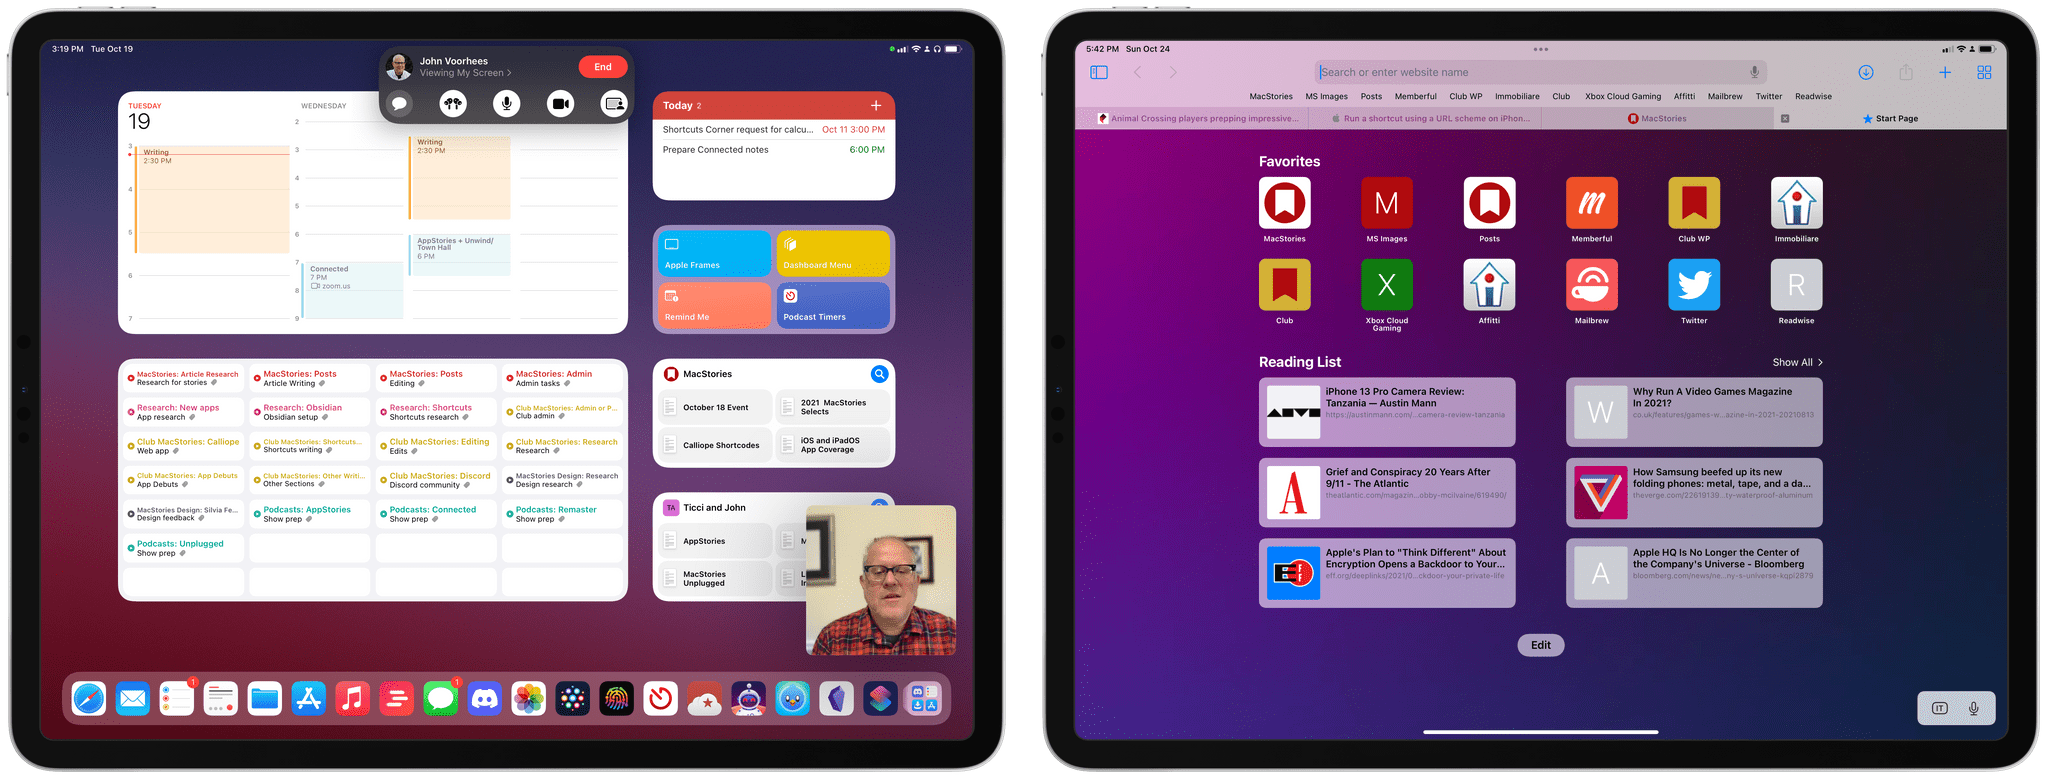 Screen sharing in FaceTime with SharePlay (left) and the updated Safari for iPad.